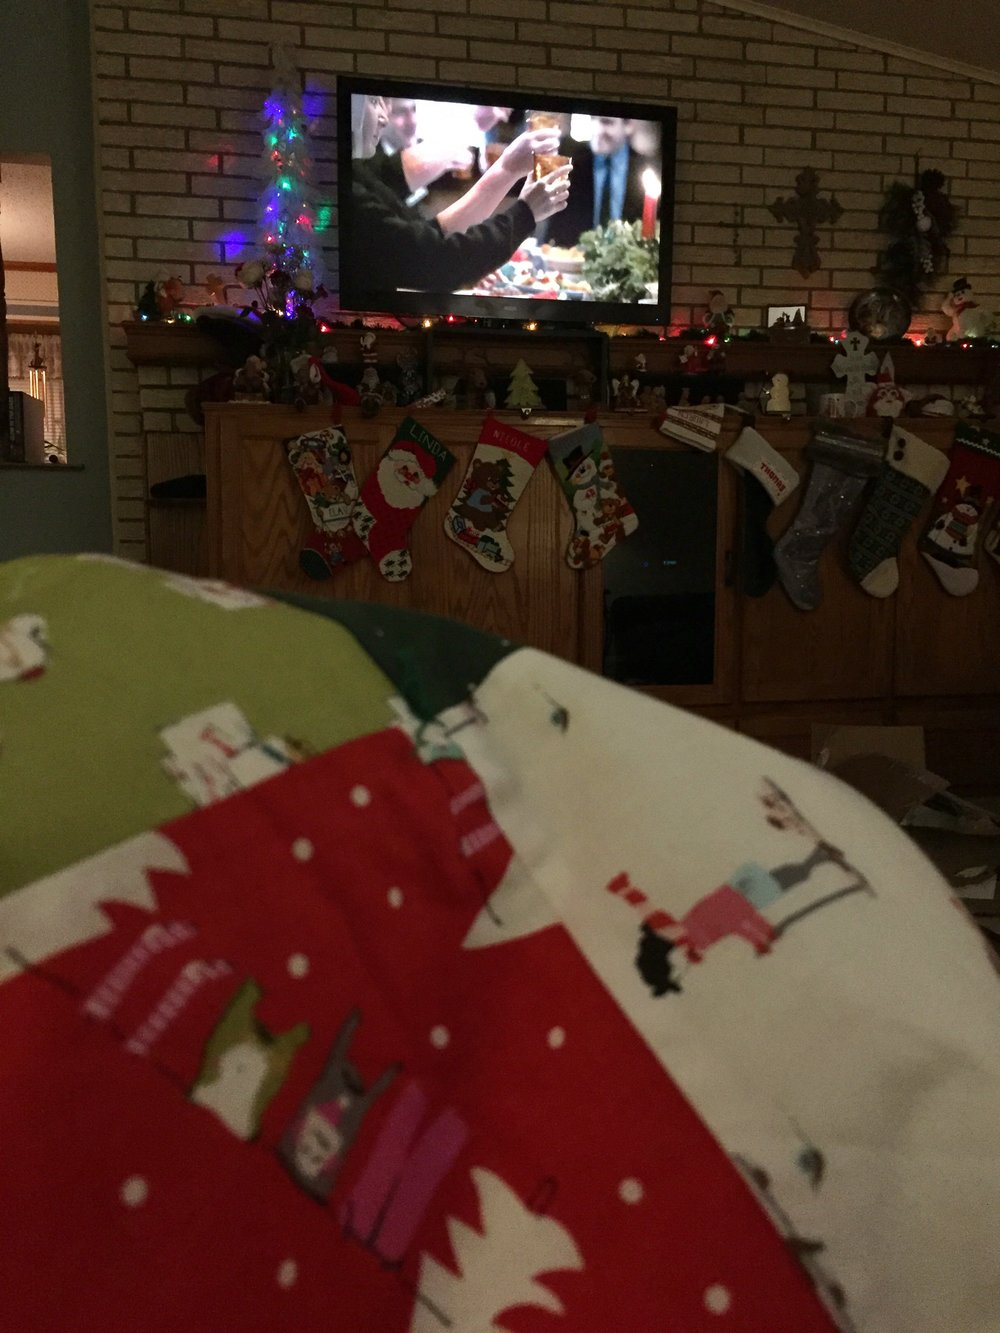 Christmas night, Christmas quilt, and Christmas special of Call the Midwife! I think I watched ALL of season 5 while working on this quilt.